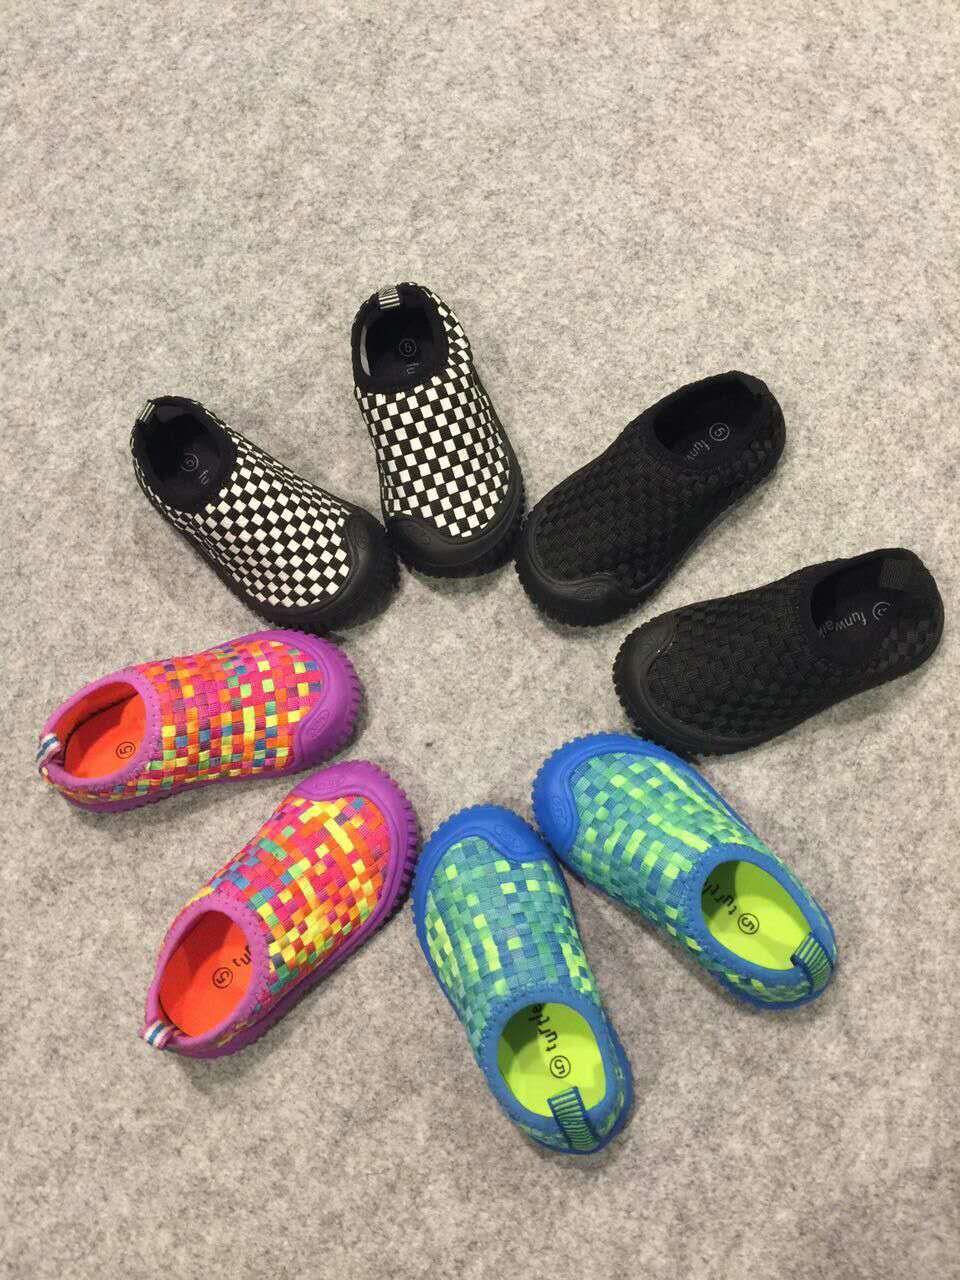 17 Children Shoes kids Sandals soft air mesh casual sport shoes baby boys girls sandals breathable running sneakers size 5-12 6